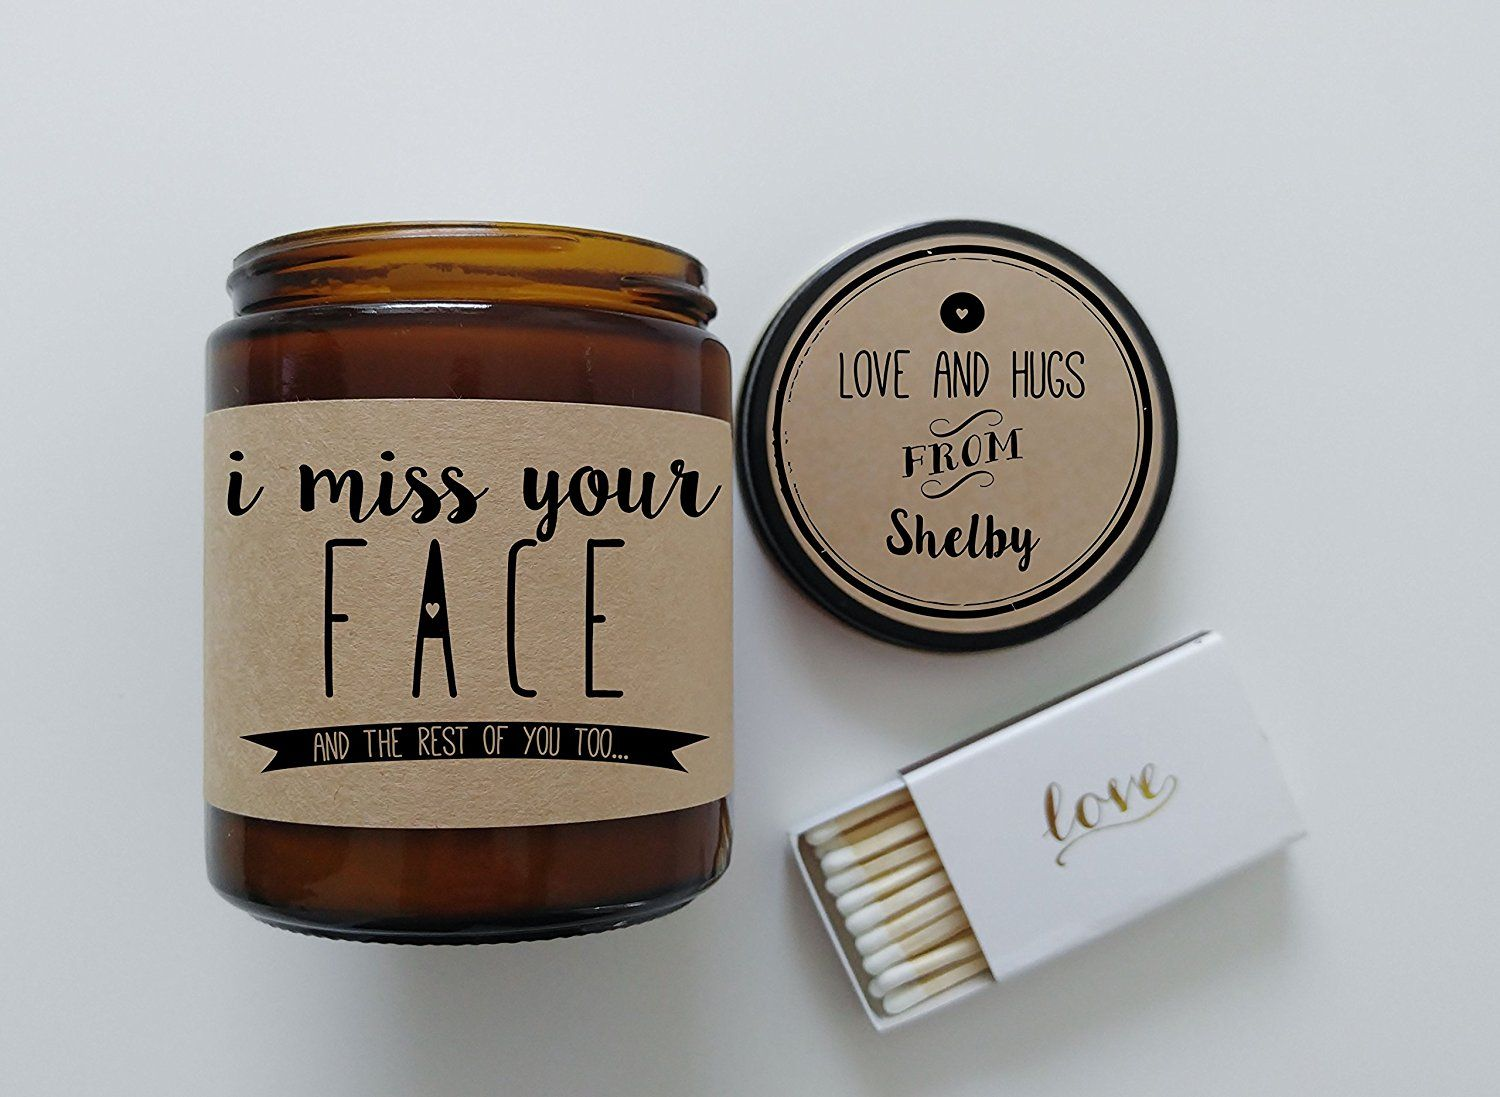 Long distance relationship gift missing you i miss your face candle